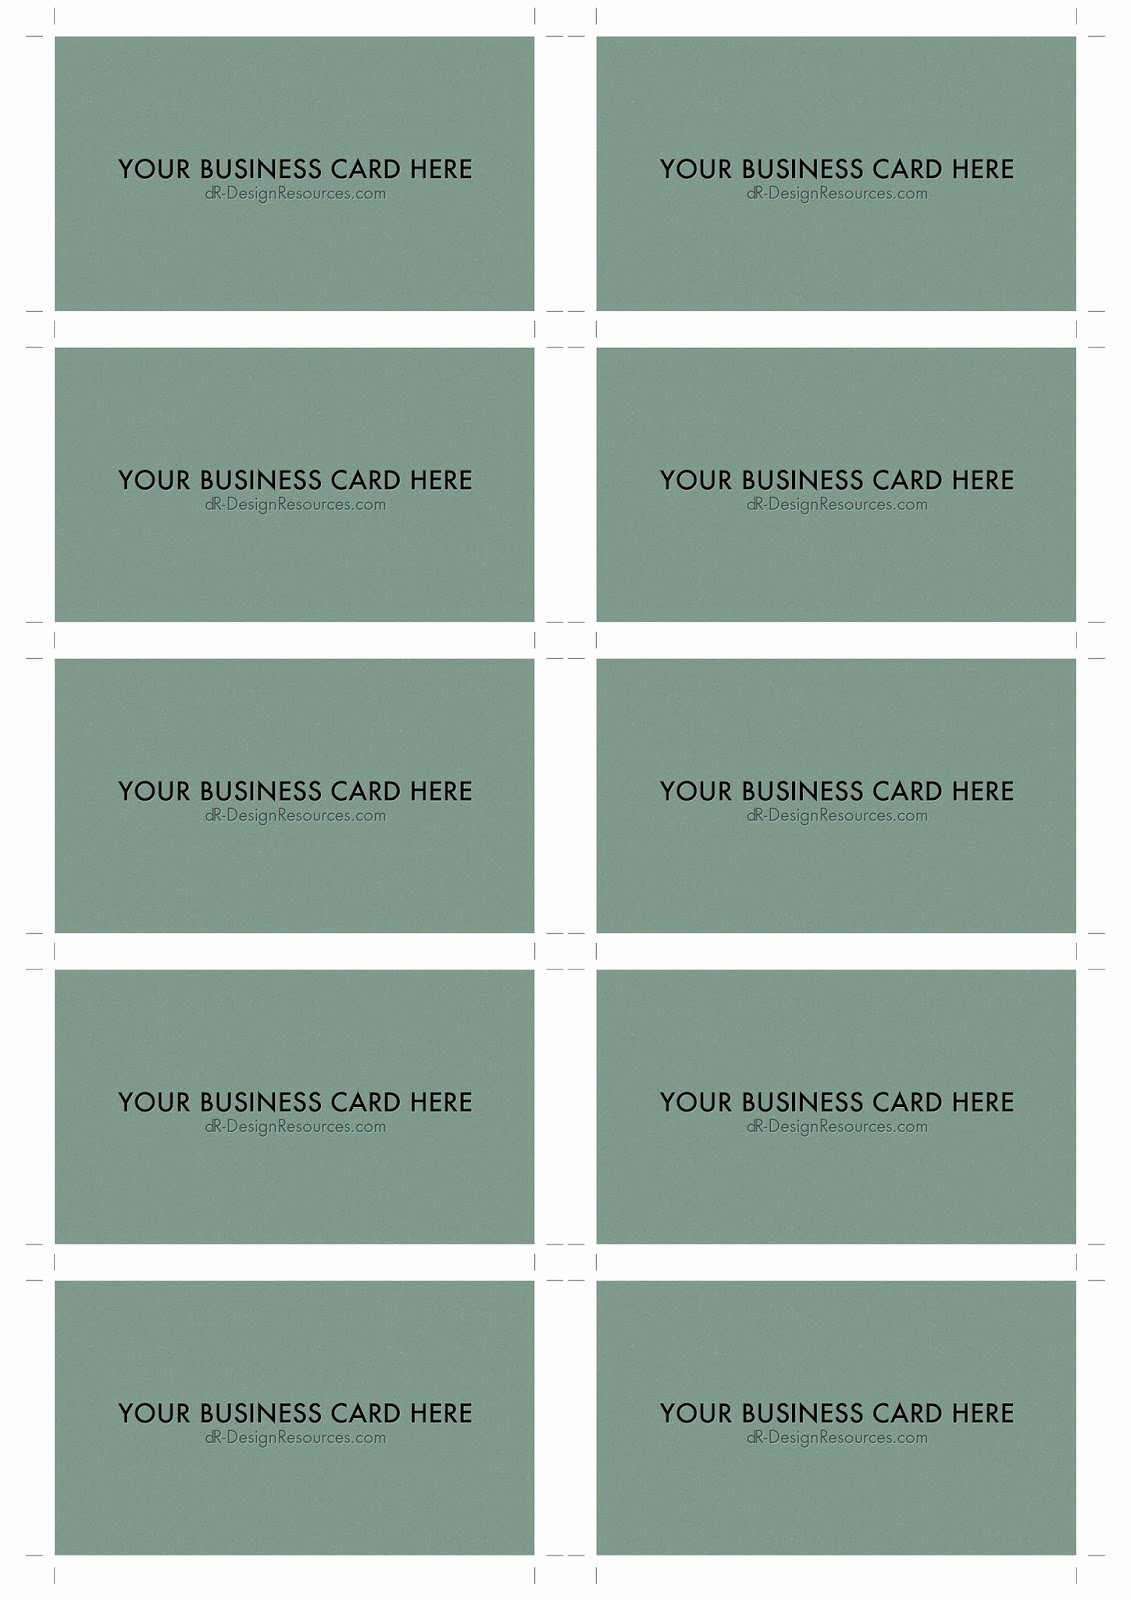 Business Card Sheet Template Luxury 10 Business Card Template Business Card Design